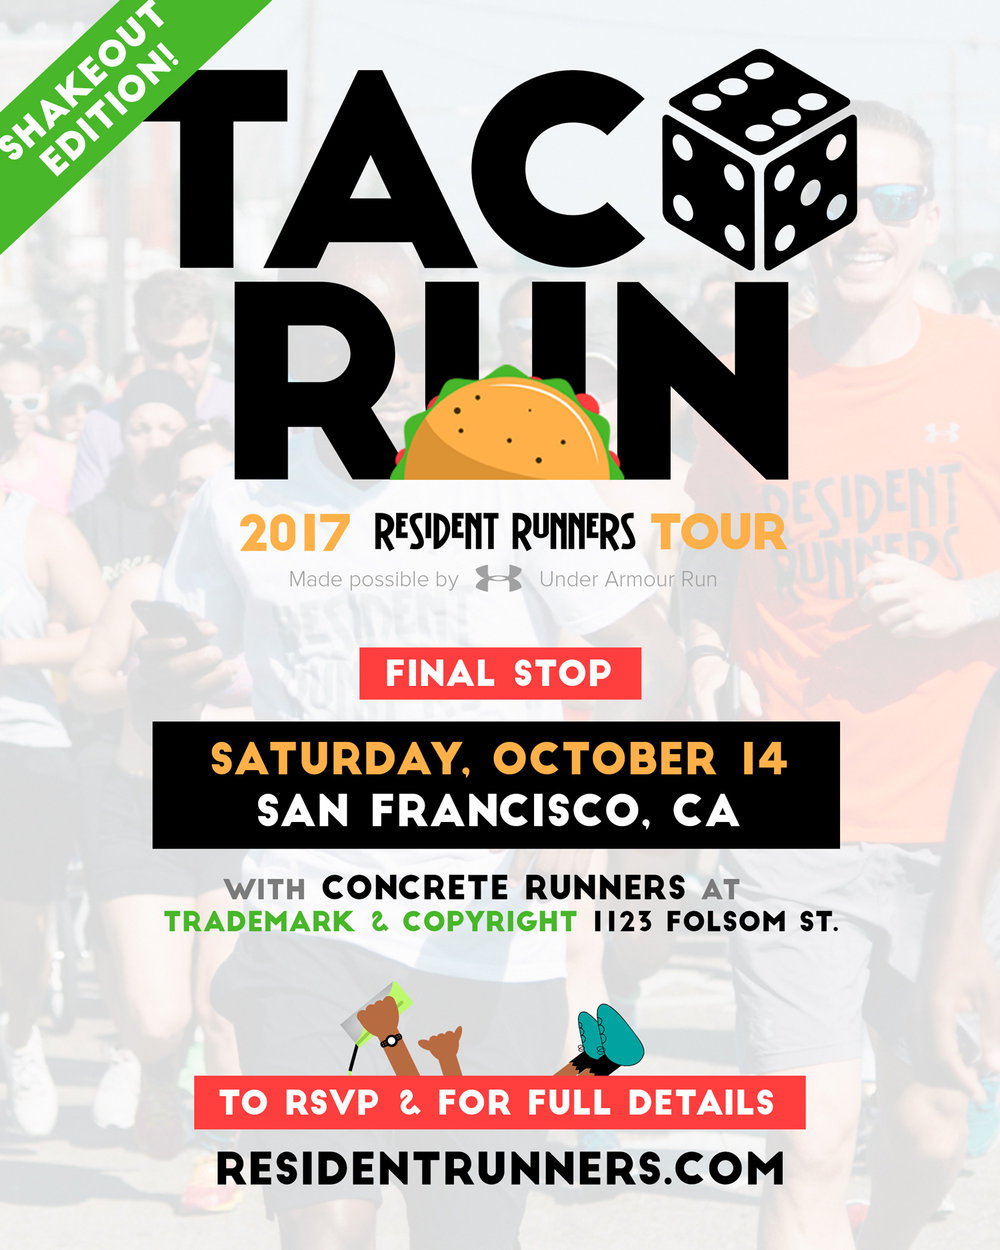 taco_run_tour_flyer_san_fran_v1.jpg